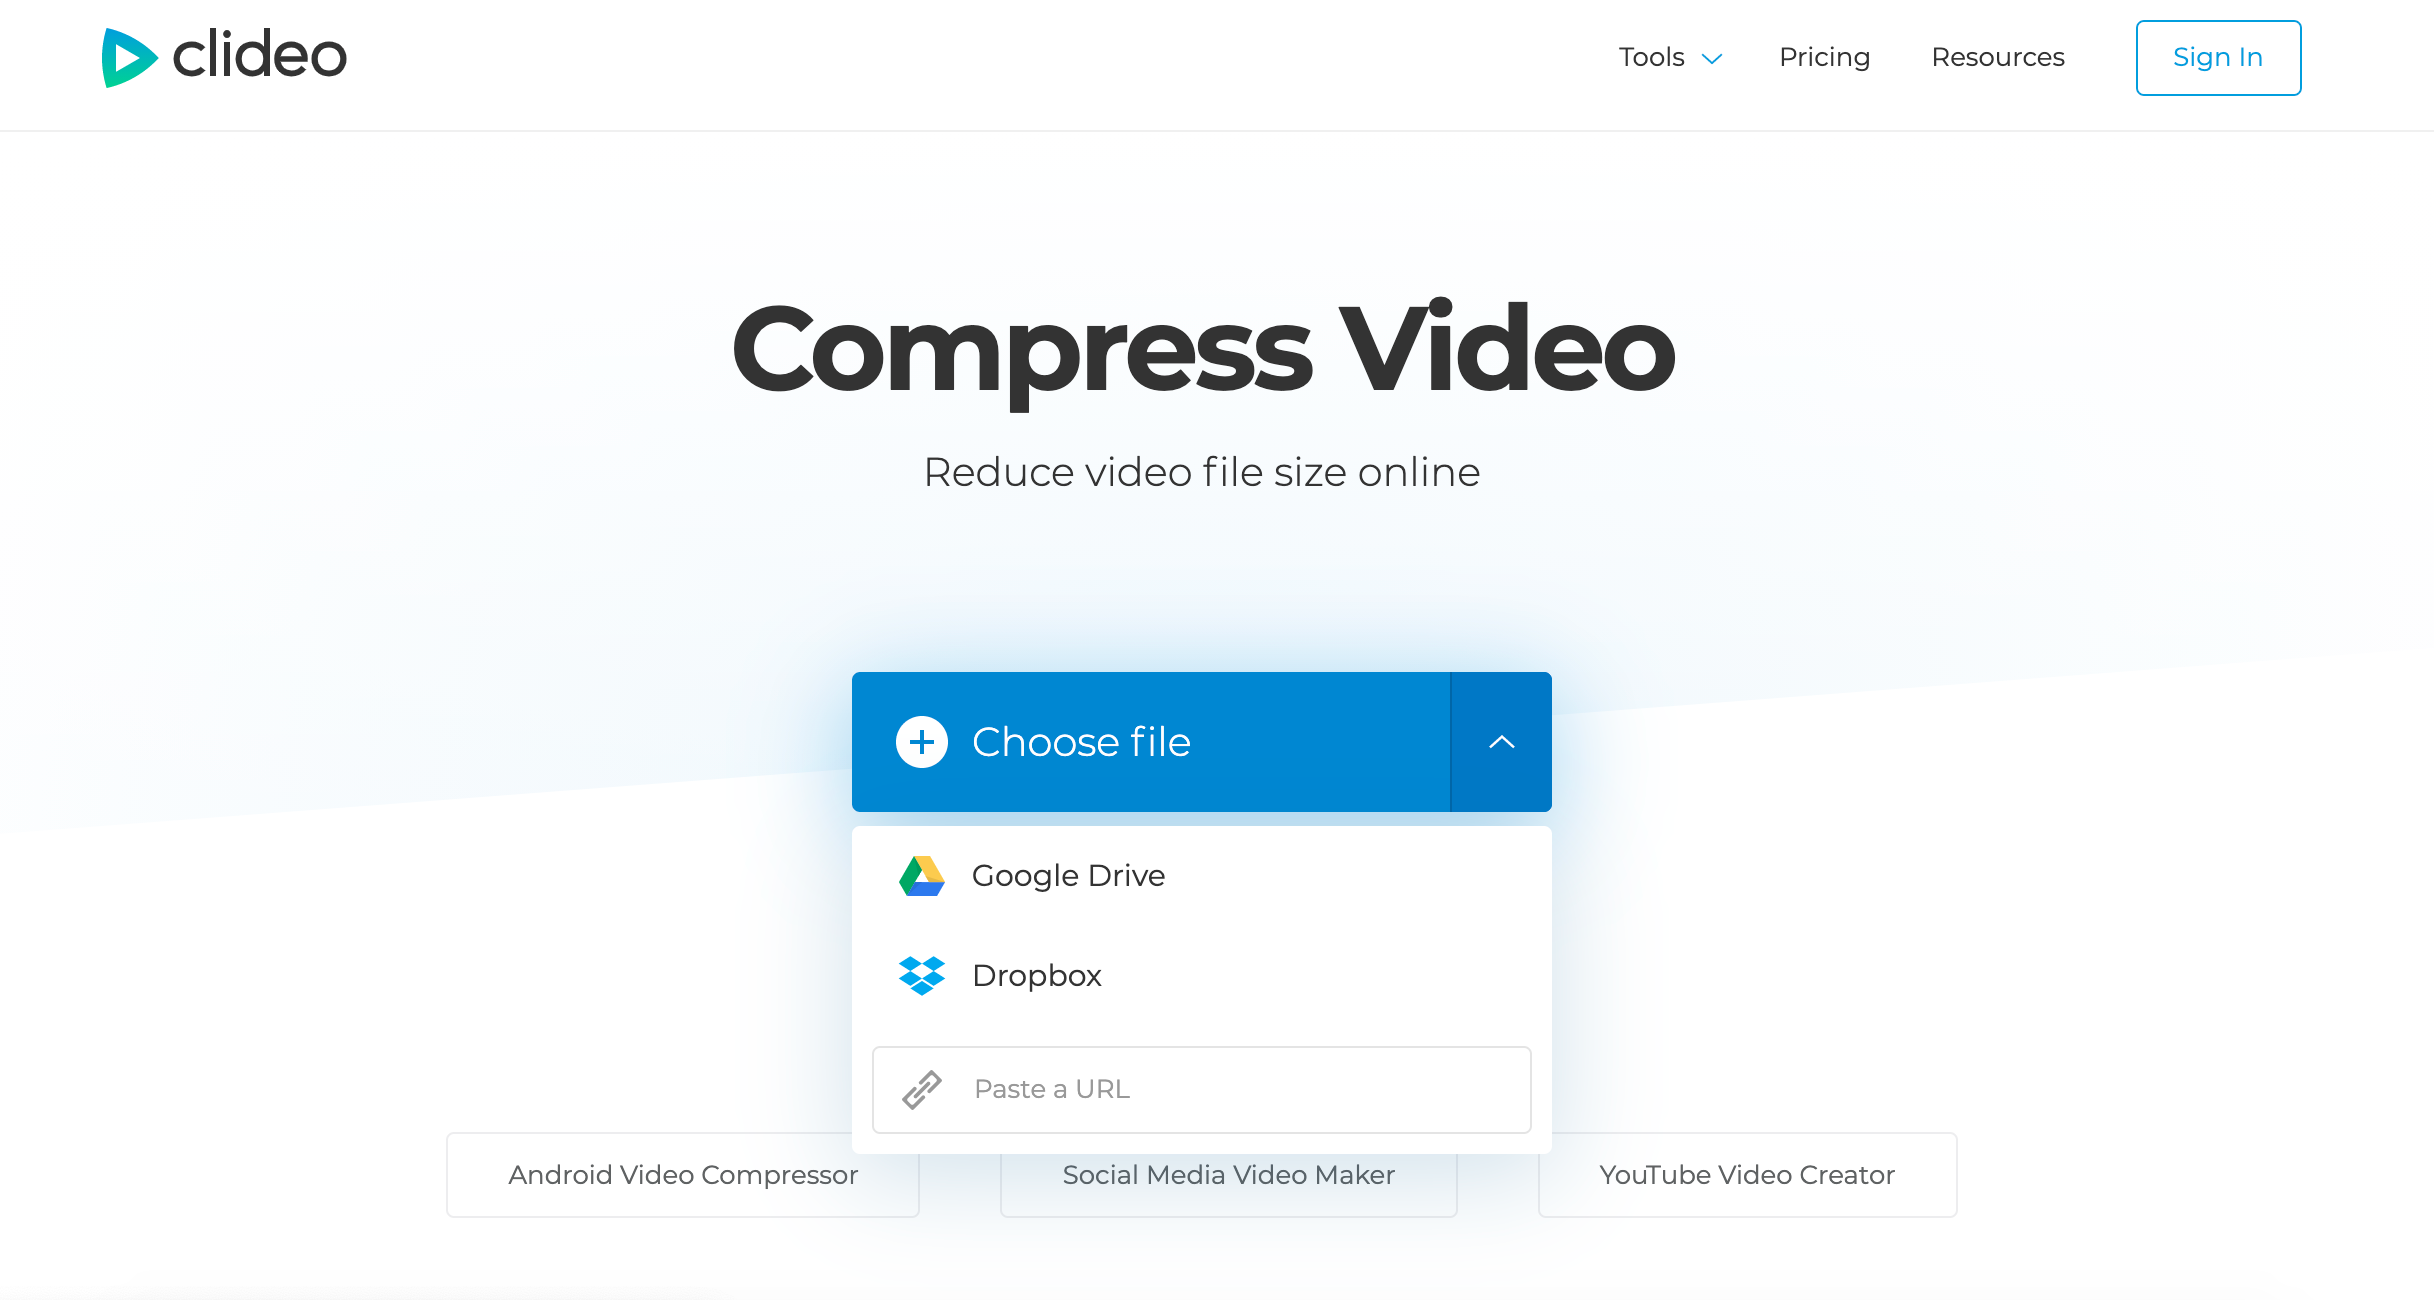 Add video to compress on Mac